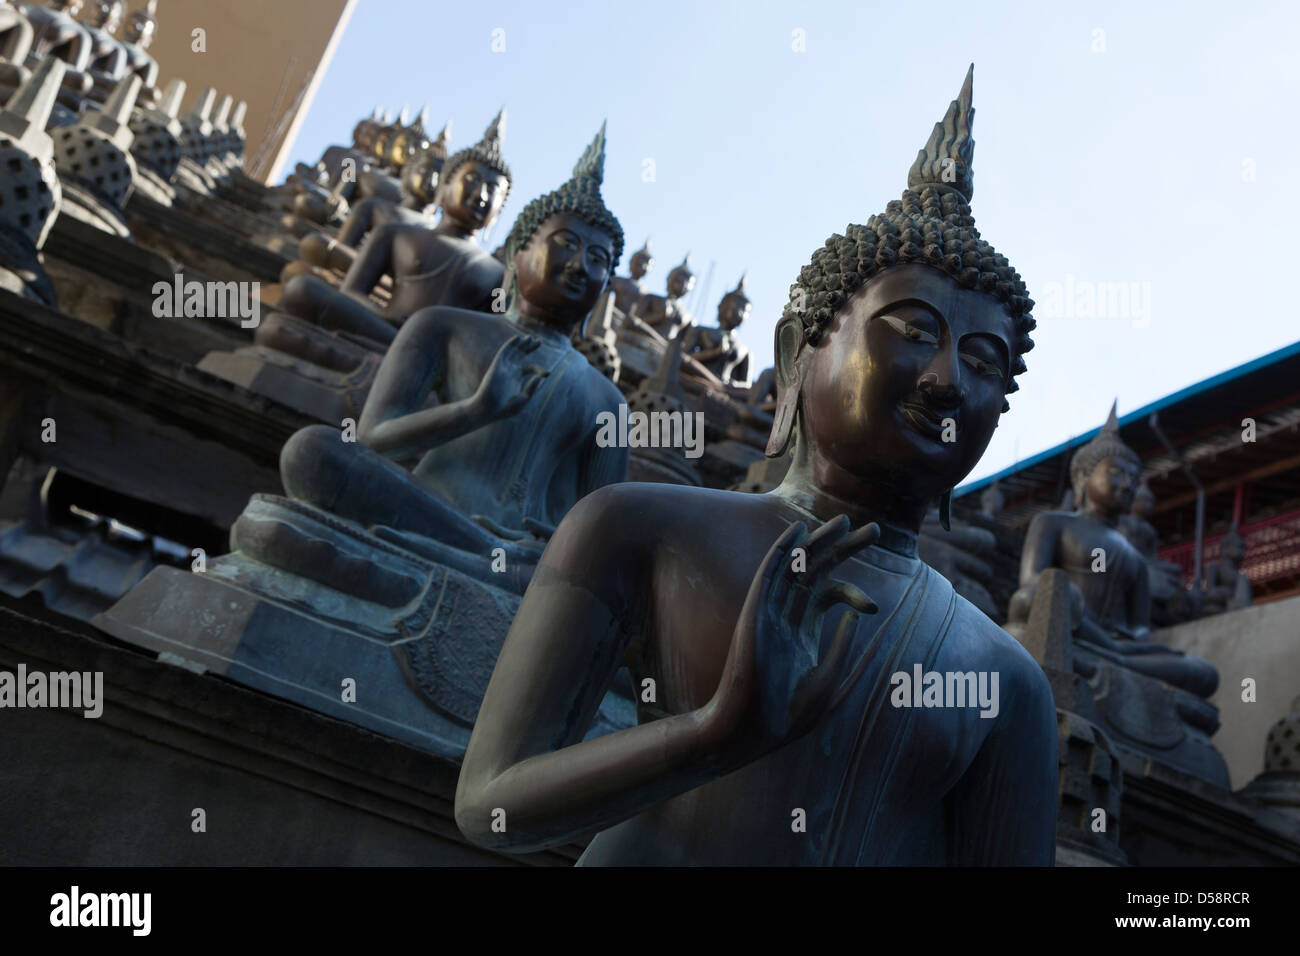 A repetition of Buddha statues in the  Gangaramaya Temple in Colombo, Sri Lanka - Stock Image